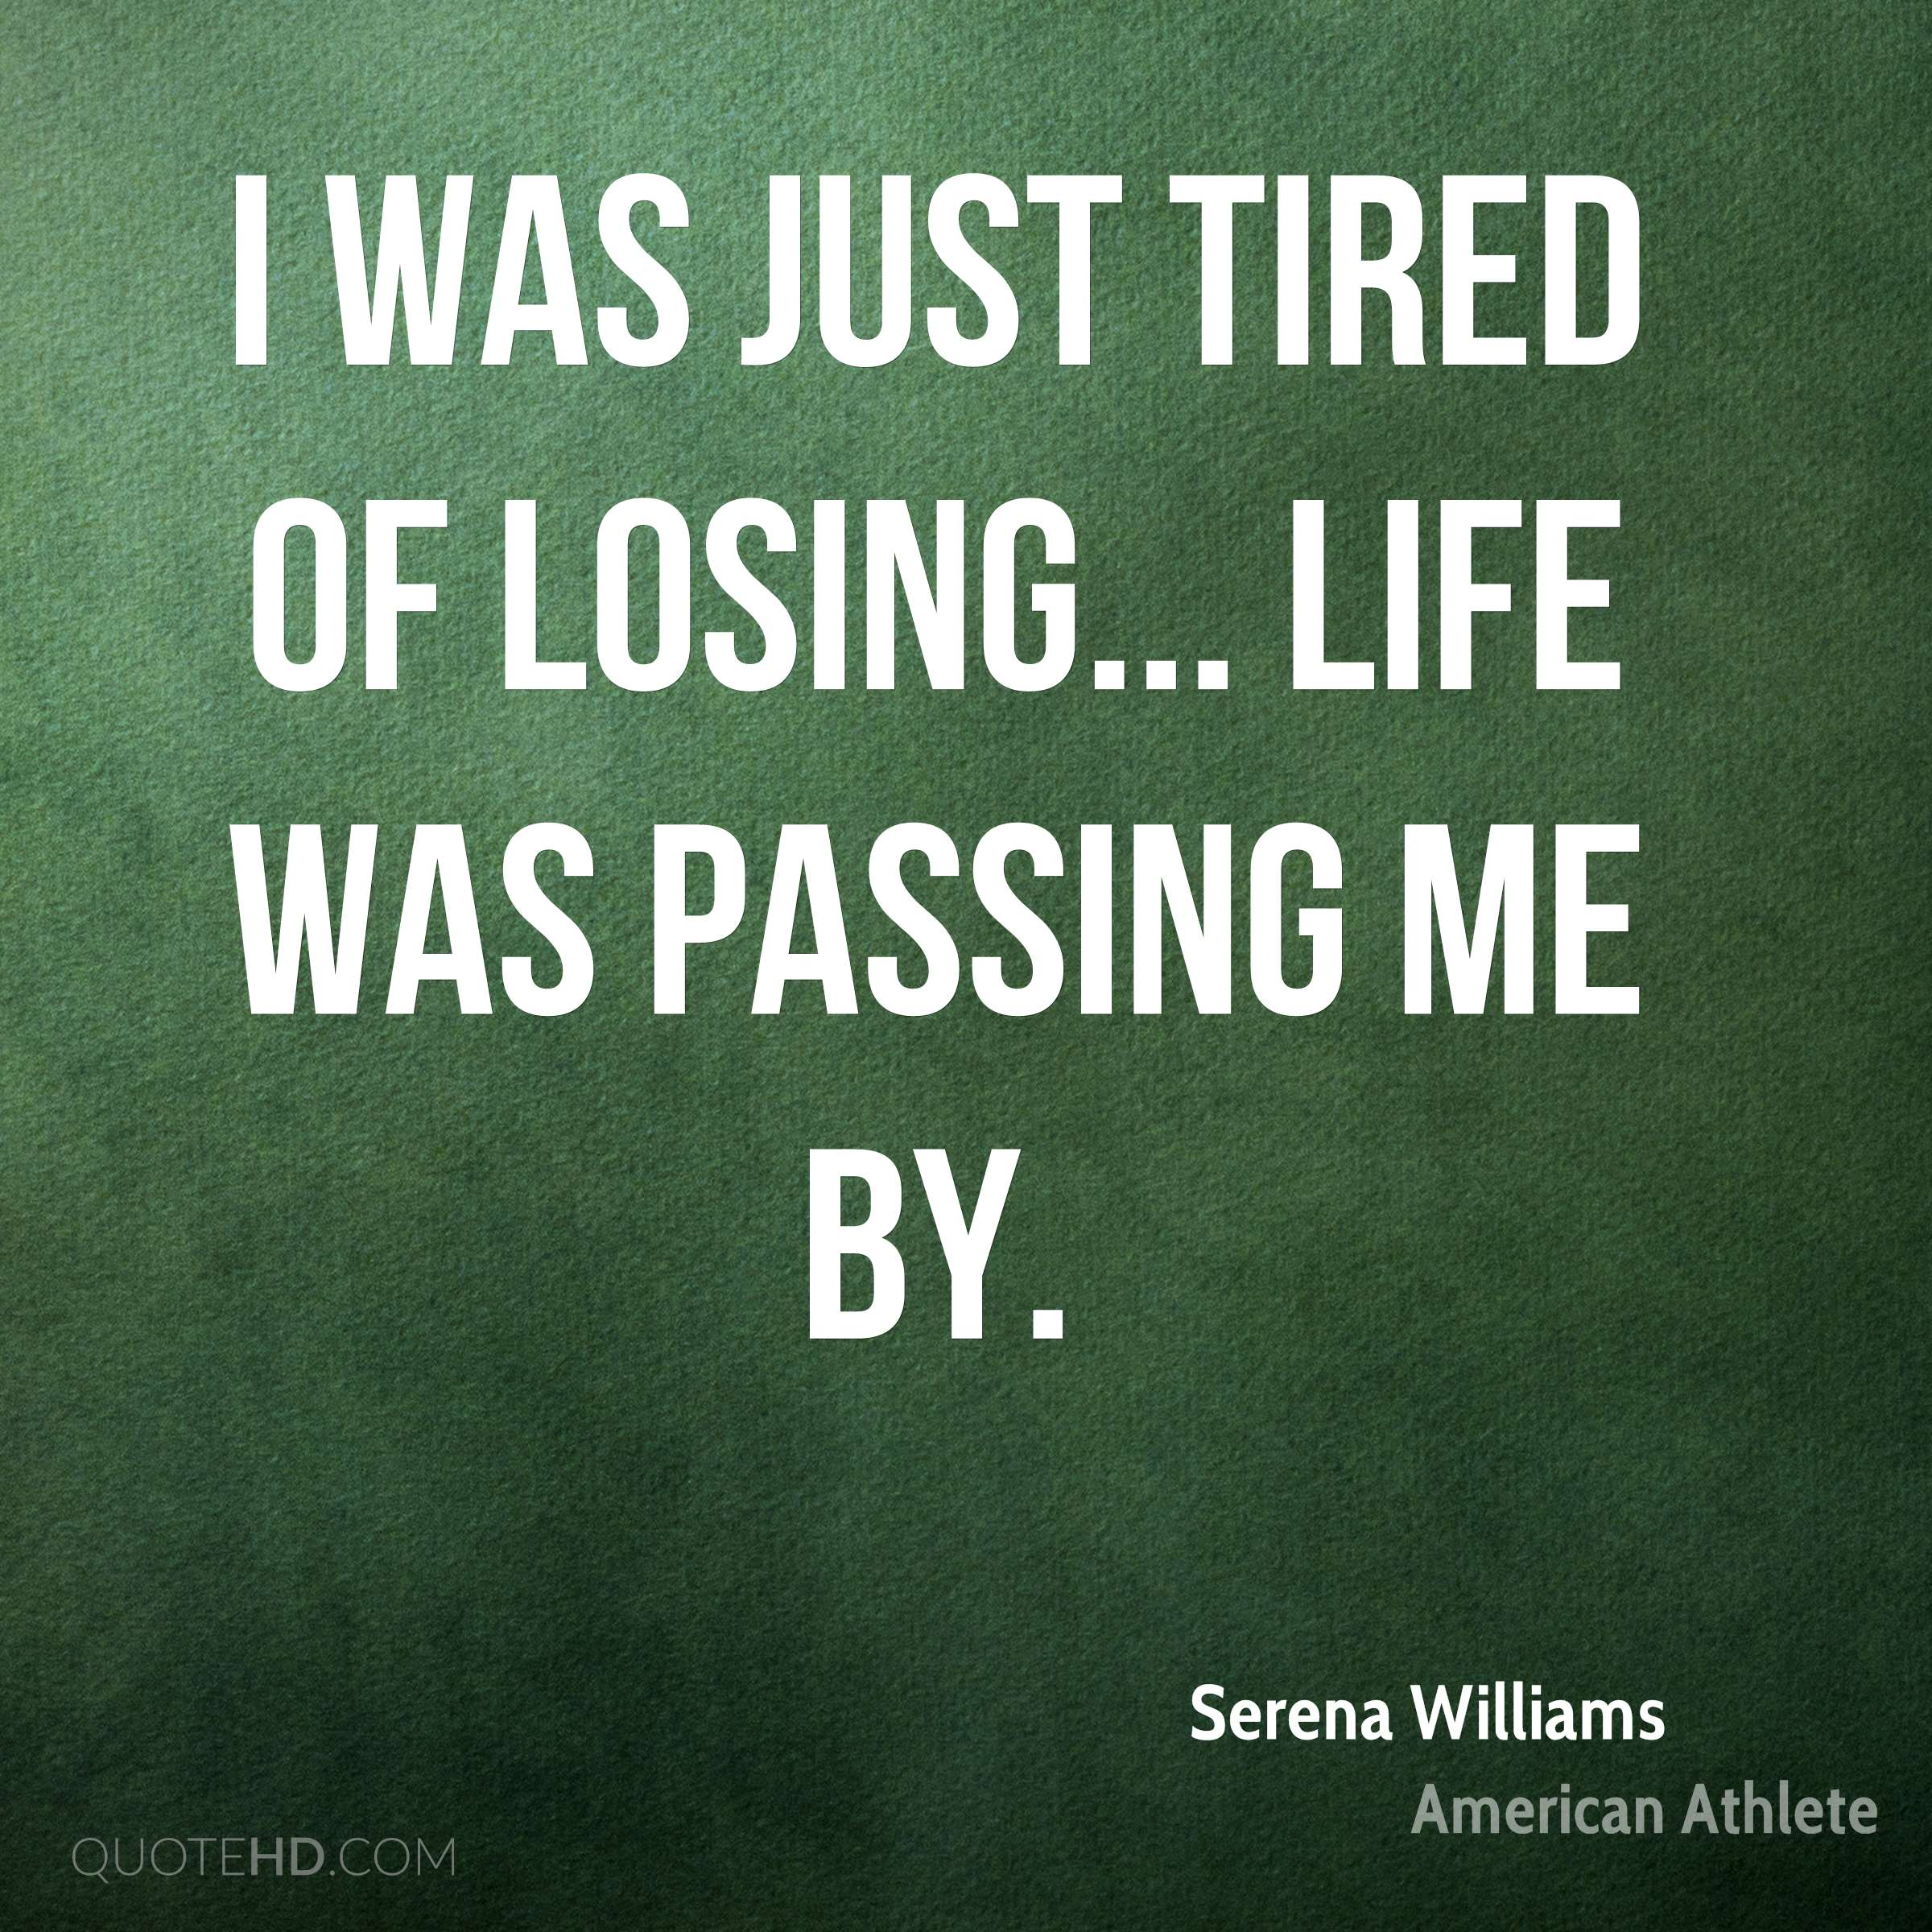 I was just tired of losing... Life was passing me by.